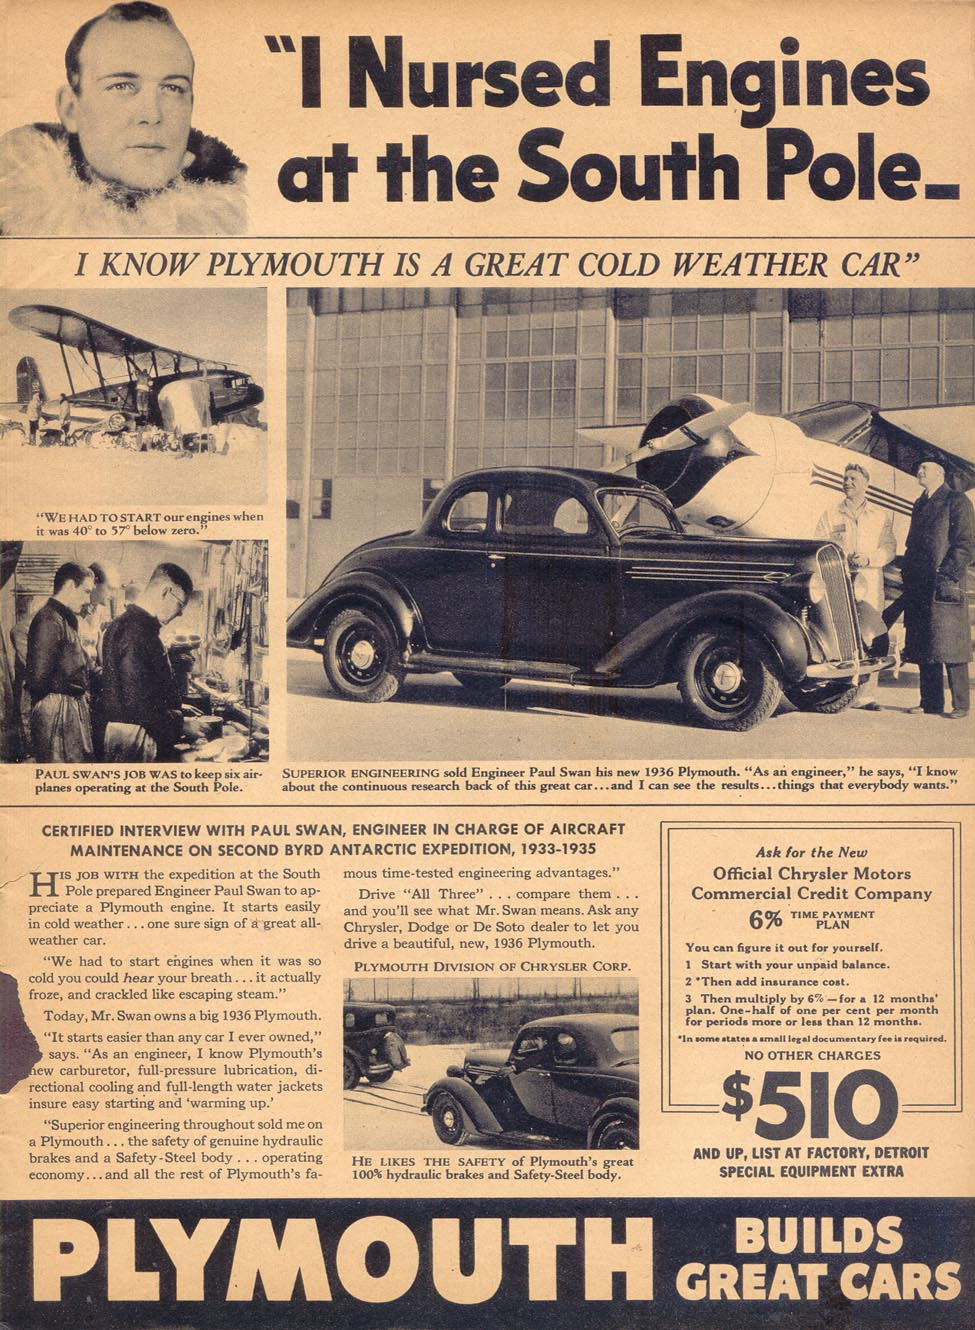 PLYMOUTH AUTOMOBILES LIBERTY 02/01/1936 p. 1